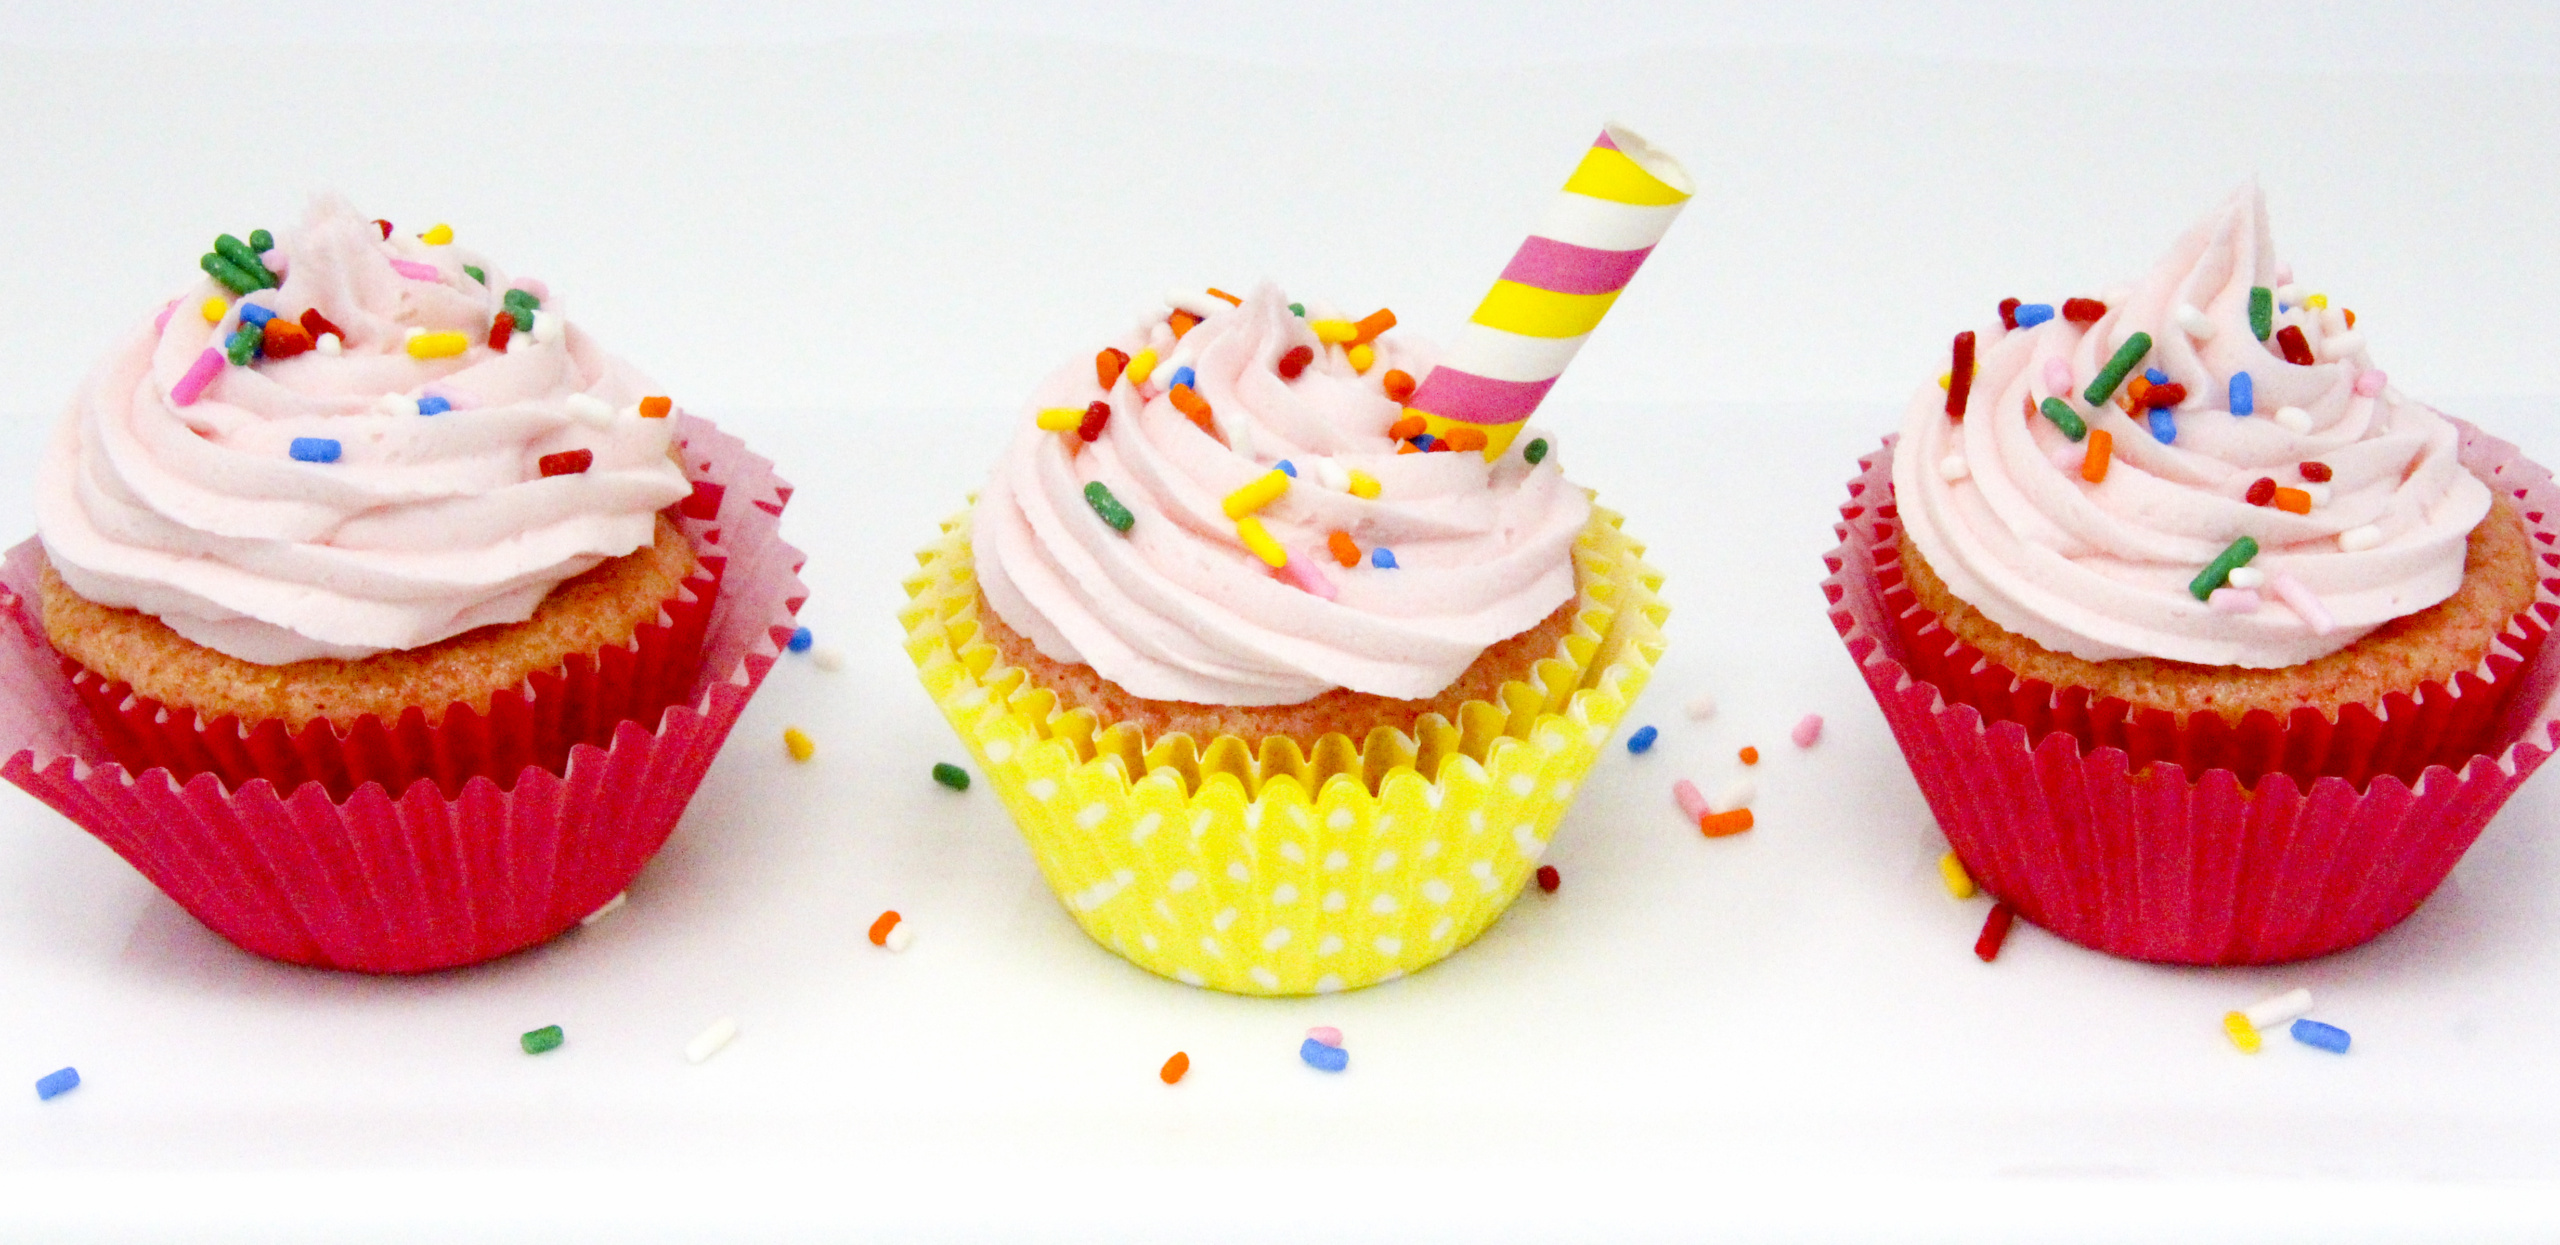 Pink Lemonade Cupcakes starts with the convenience of a boxed mix but with the addition of frozen pink lemonade, the summertime flavor shines in these tasty treats! Recipe from FRAMED AND FROSTED by Kim Davis.